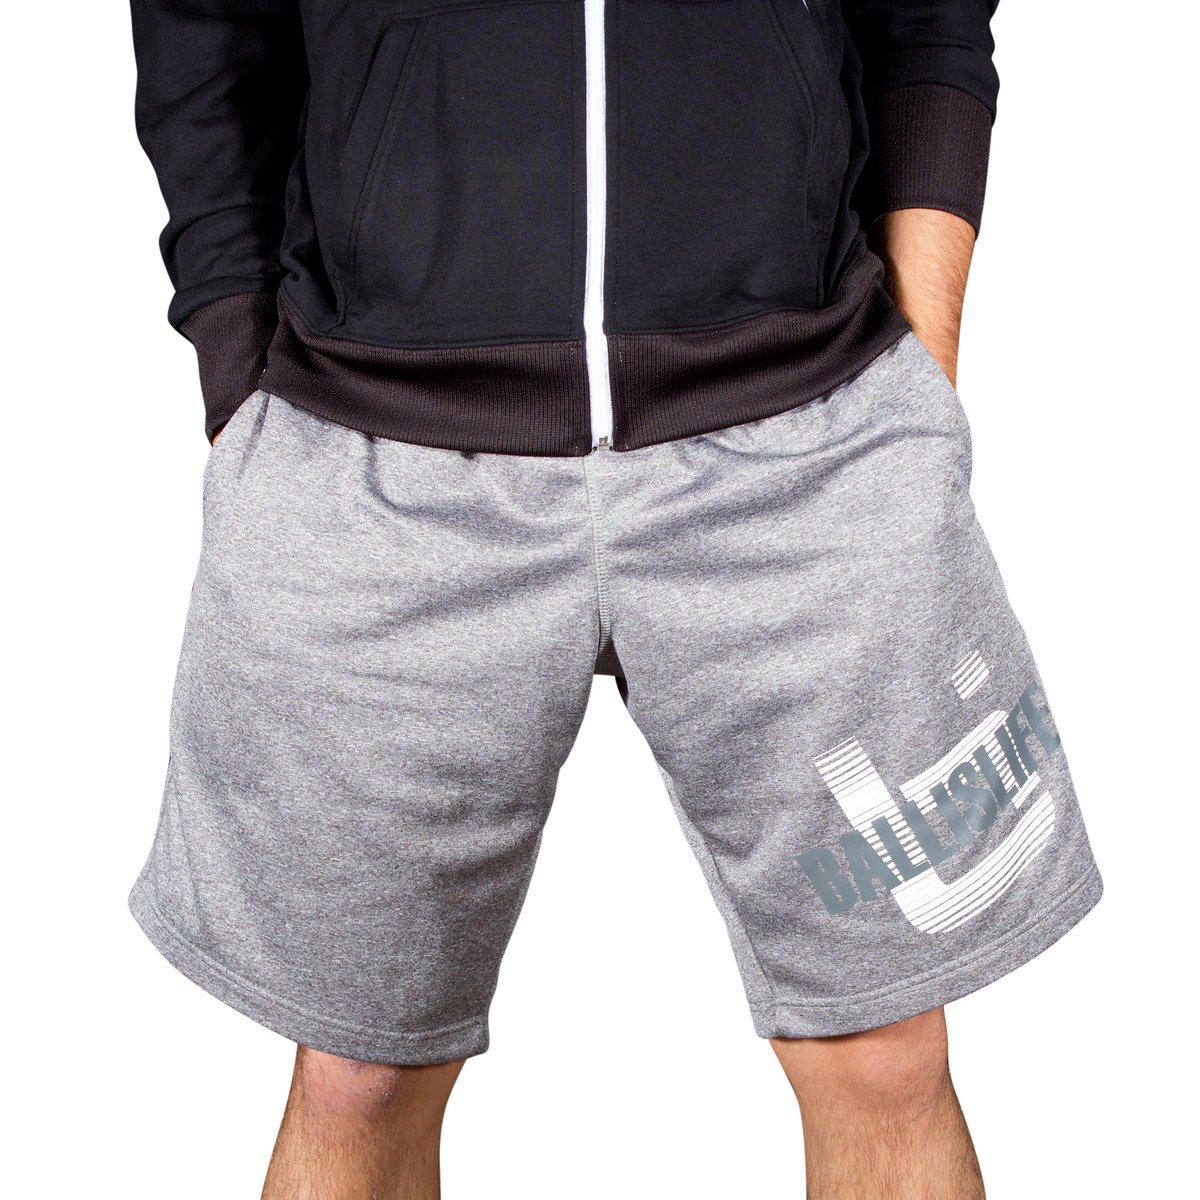 Our newest tech fleece shorts keeping you comfy for any occasion - the TC Shorts! Shop now: bit.ly/bilshorts-t